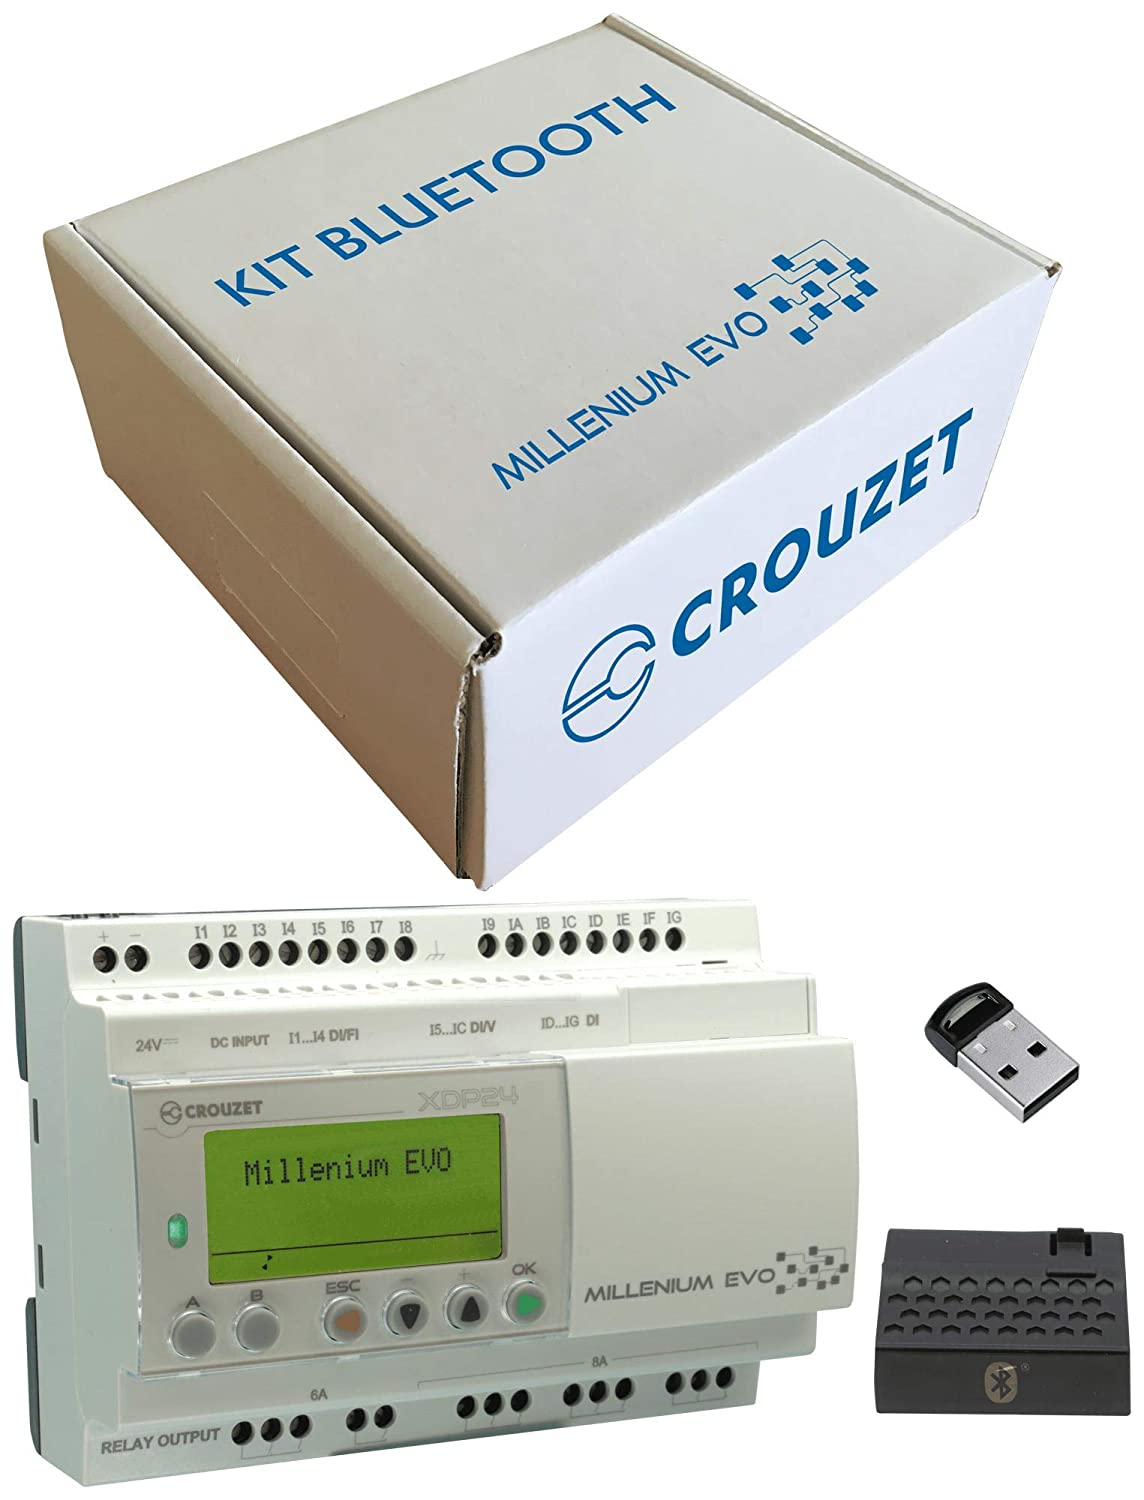 CROUZET AUTOMATION 88975901 Starter Kit, Millenium Evo, 88975101 XDP24 PLC, Bluetooth Interface and Receiver